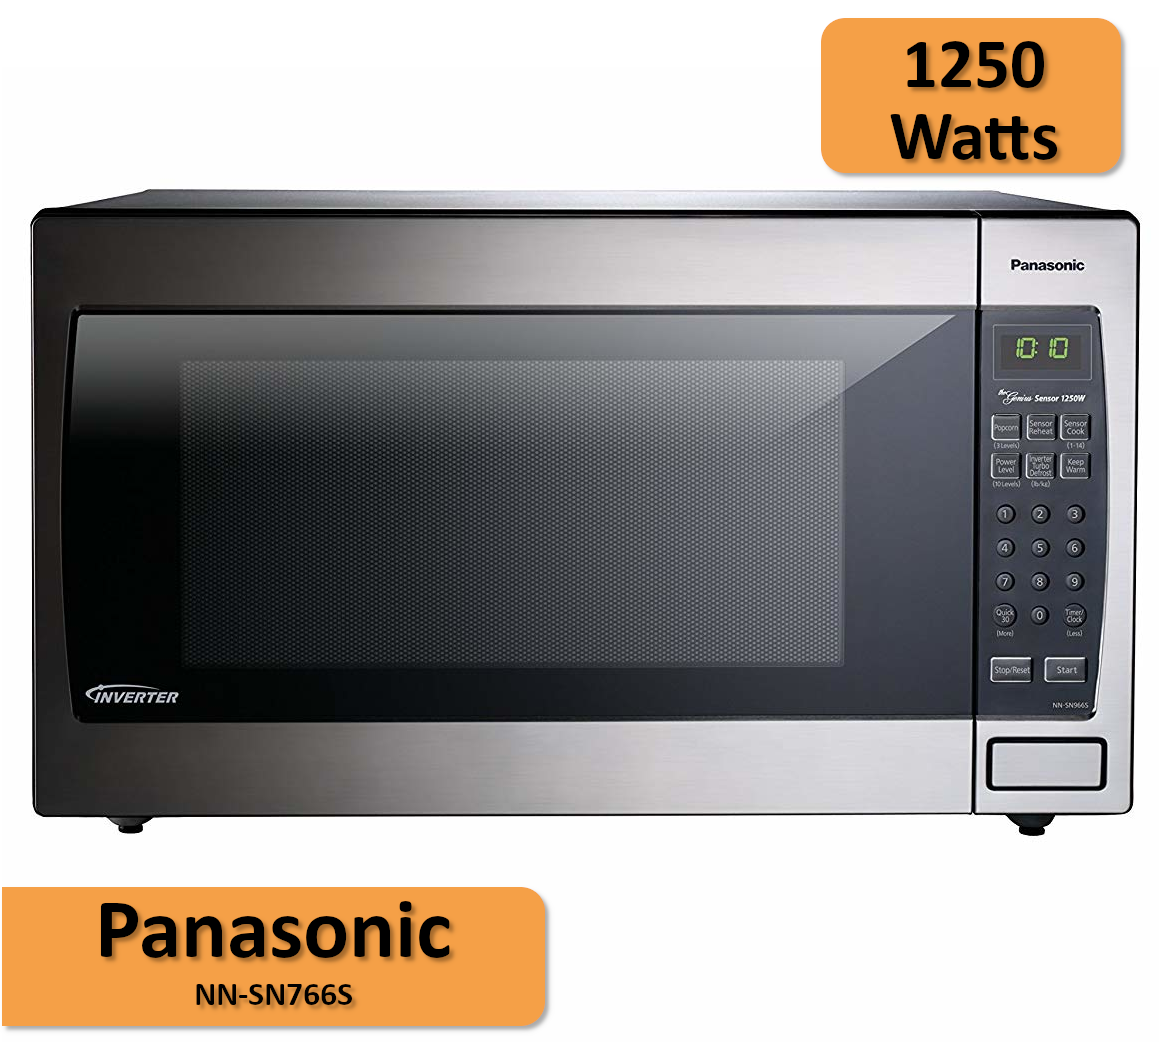 Enjoy Faster Cooking Times With 1250 Watts High Power Panasonic Microwavewatts Kitchenhelper Microwave Kitchen Helper Range Microwave